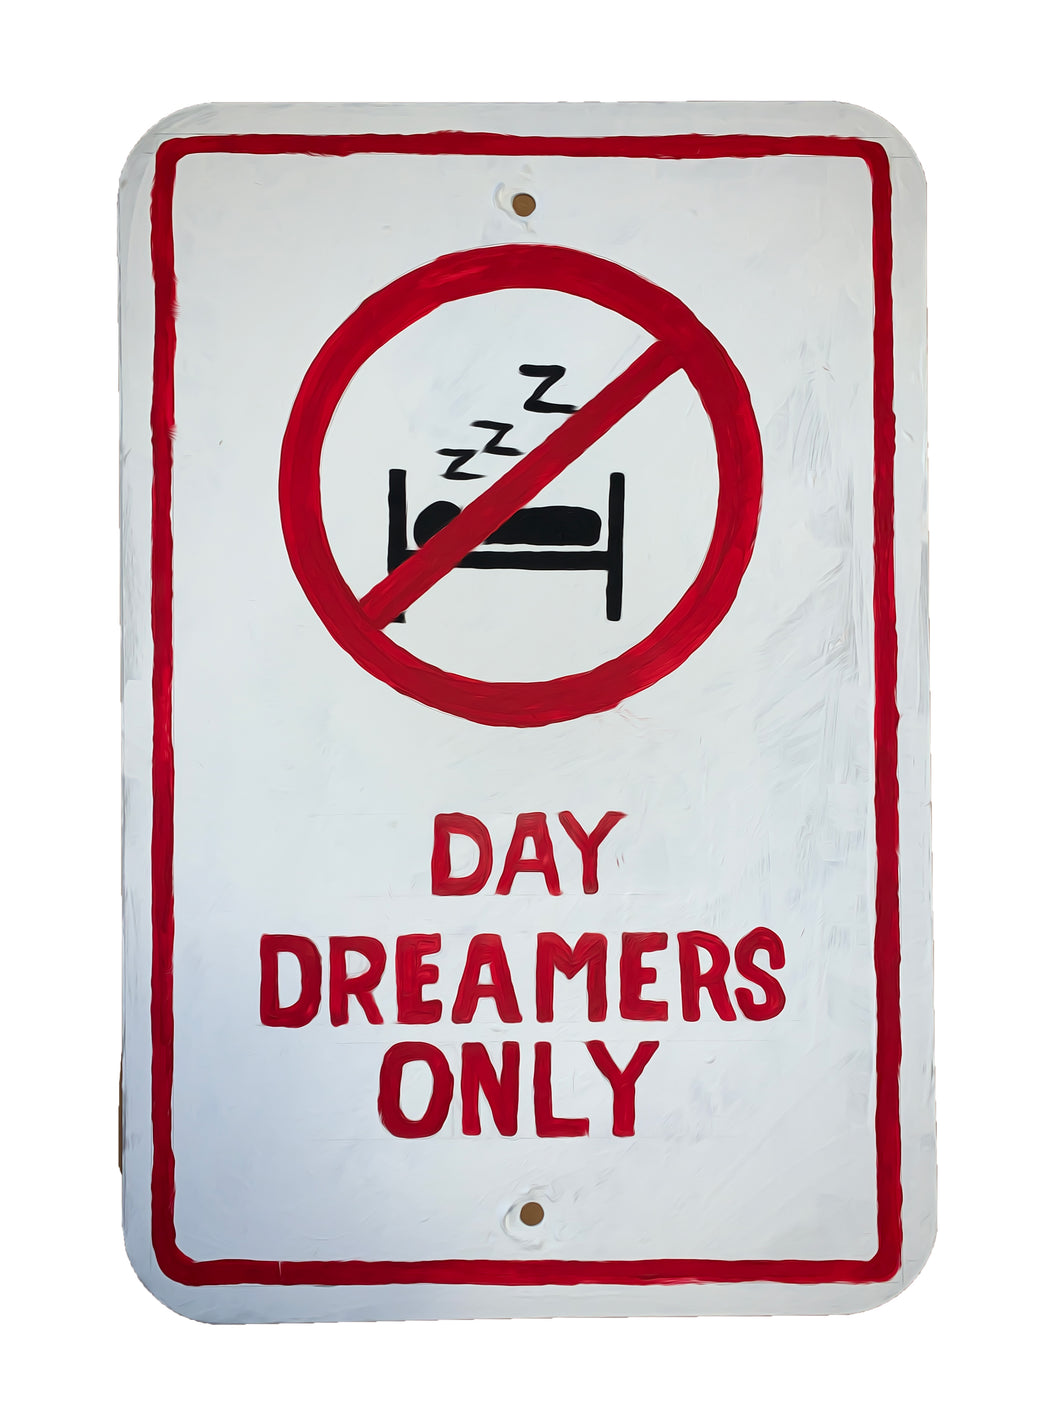 Day Dreamer Street Sign